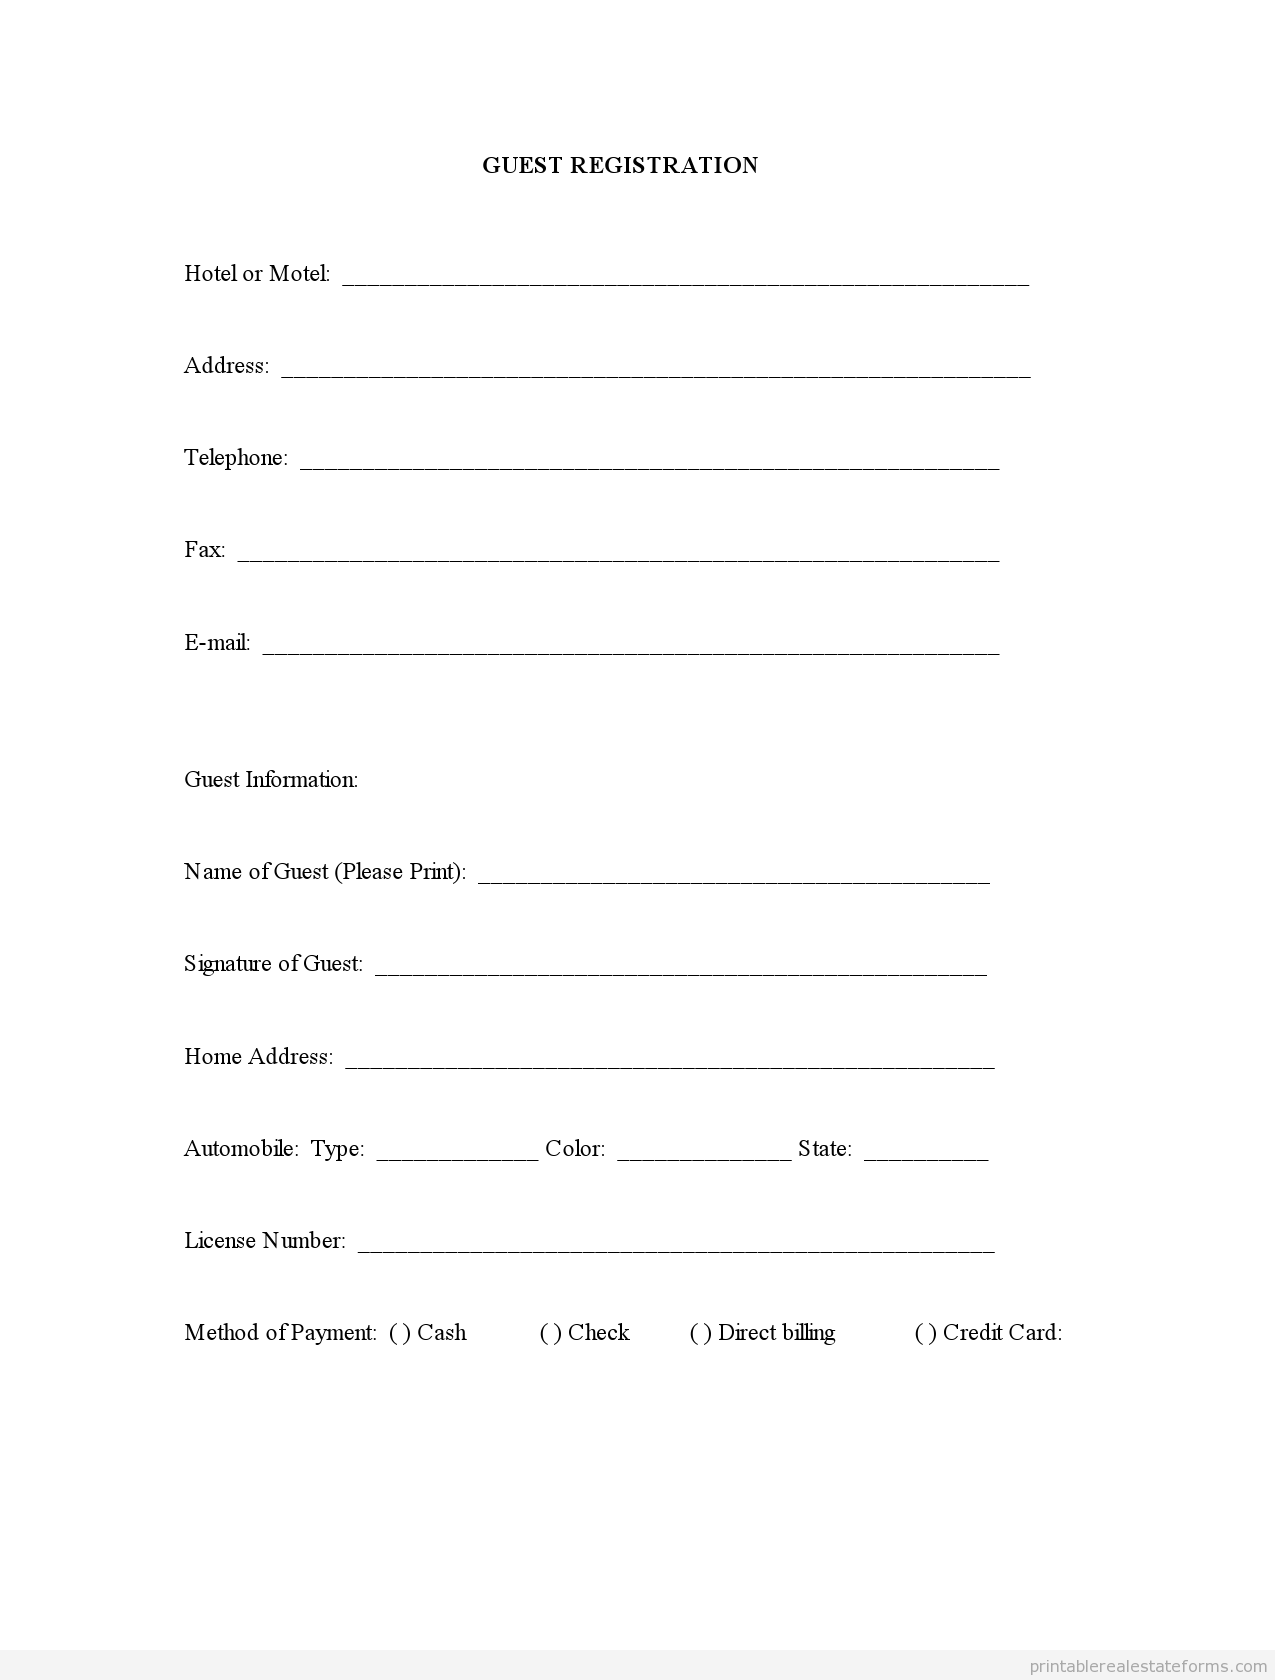 Sample printable guest registration form printable real for Guest house business plan template